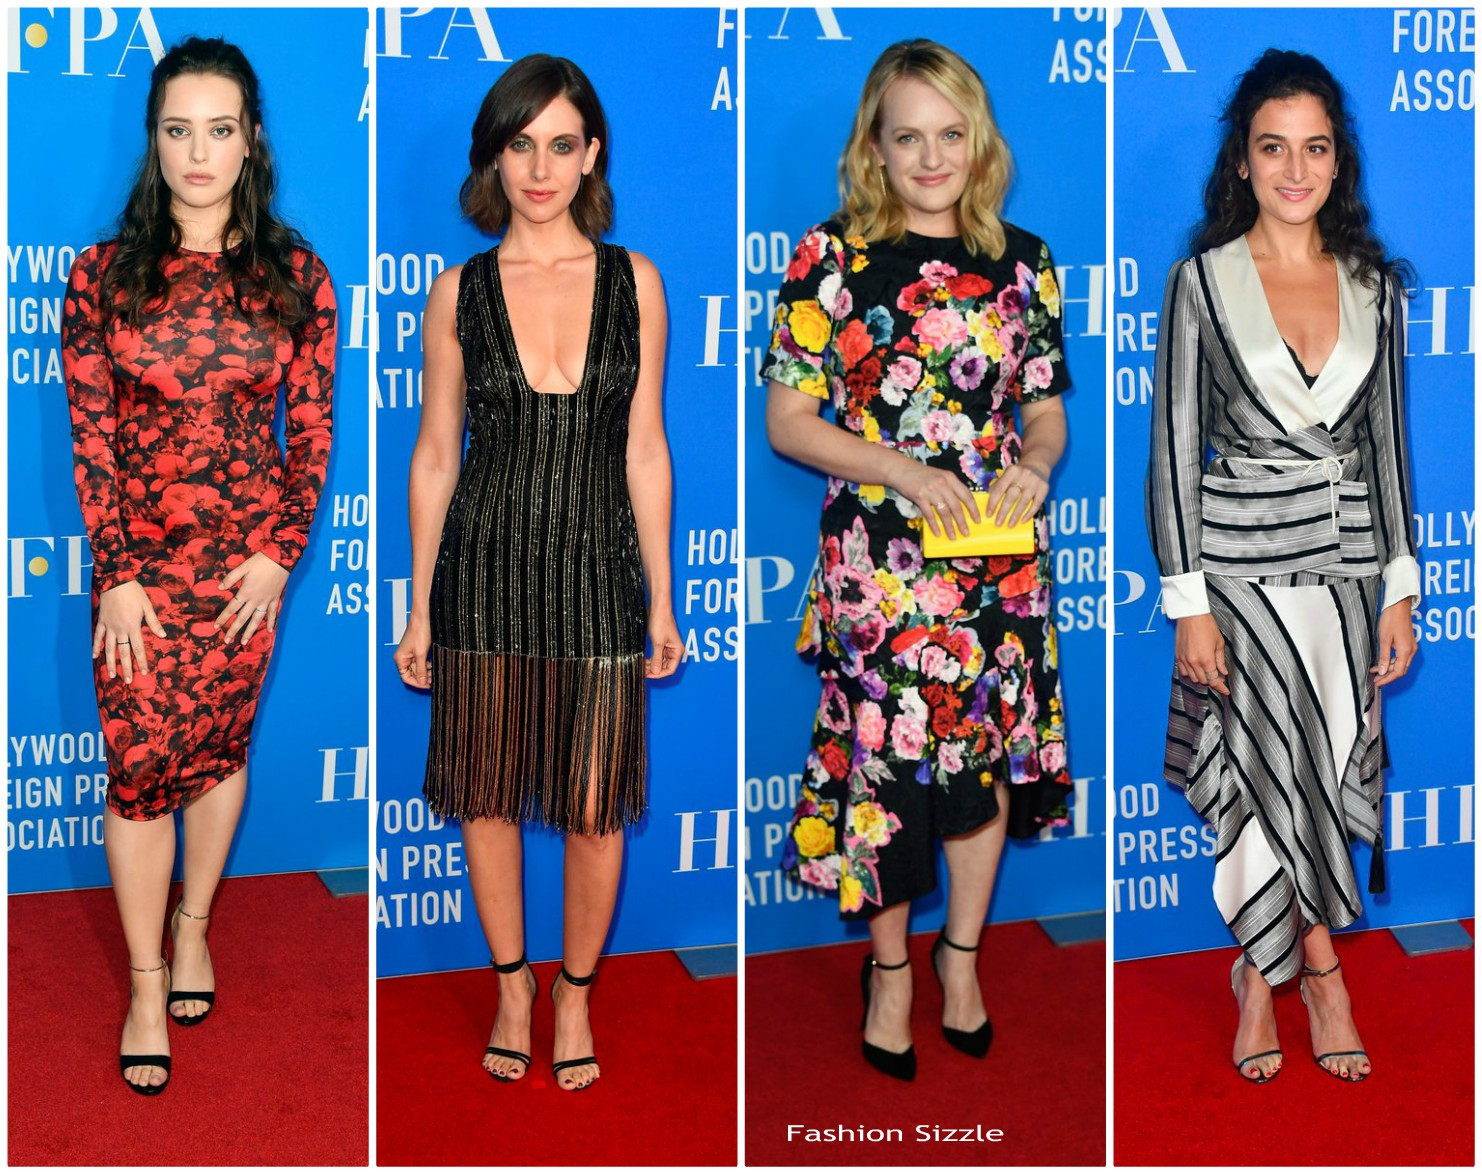 the-hollywood-foreign-press-association-grants-banquest-2017